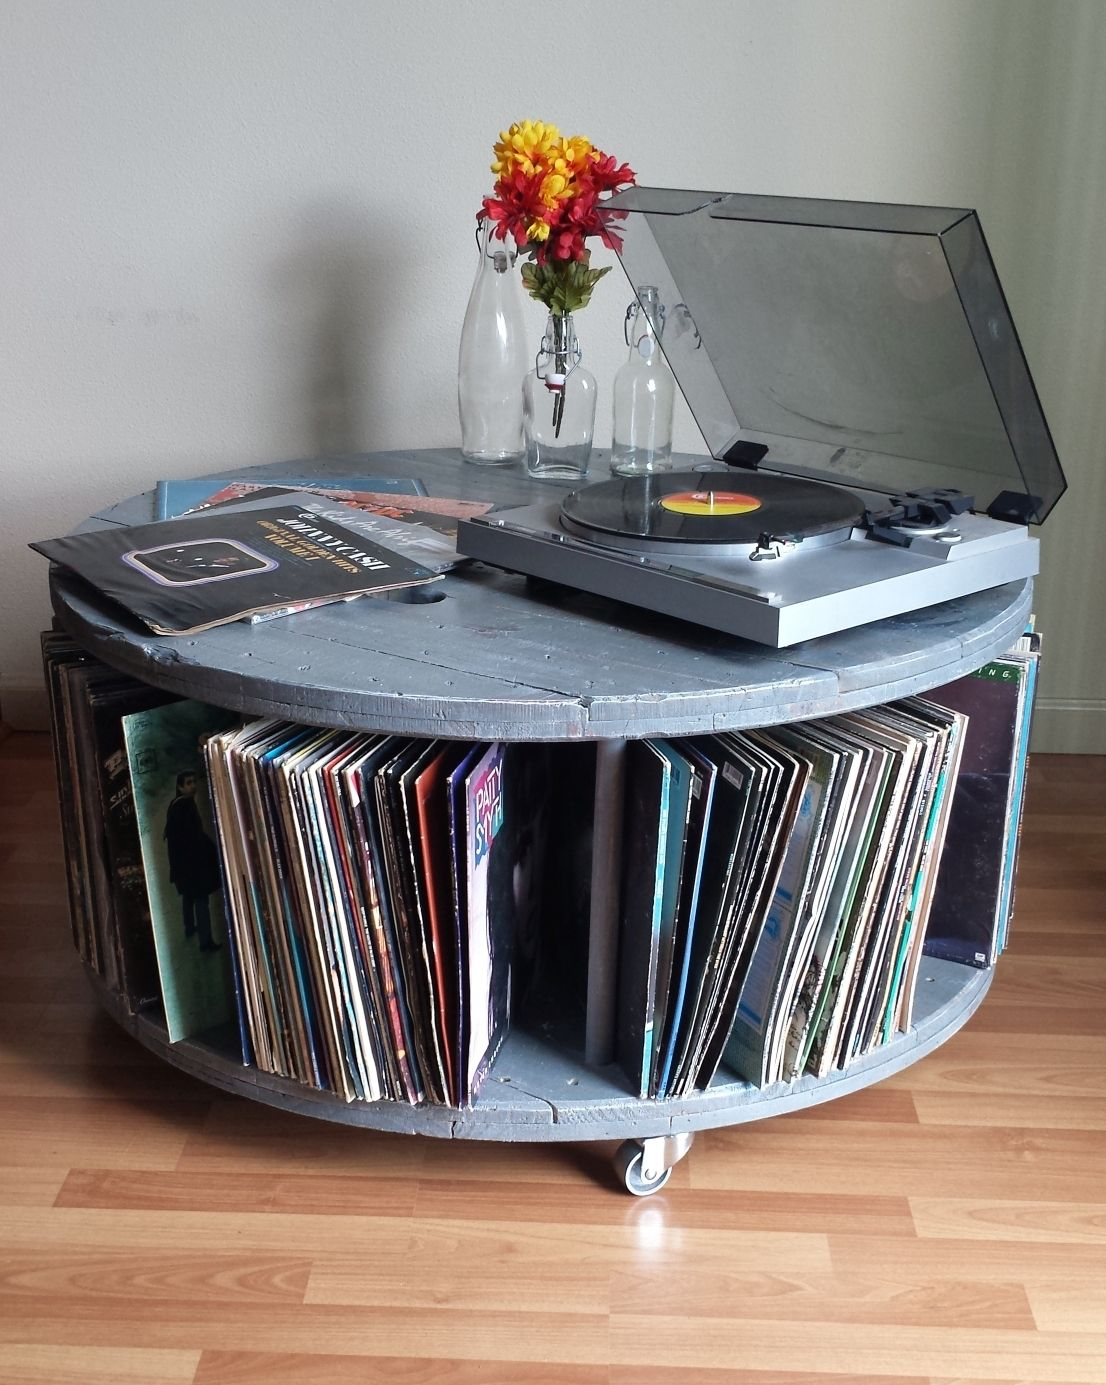 Repurposed Cable Reel Spool Media Center Turntable Stand